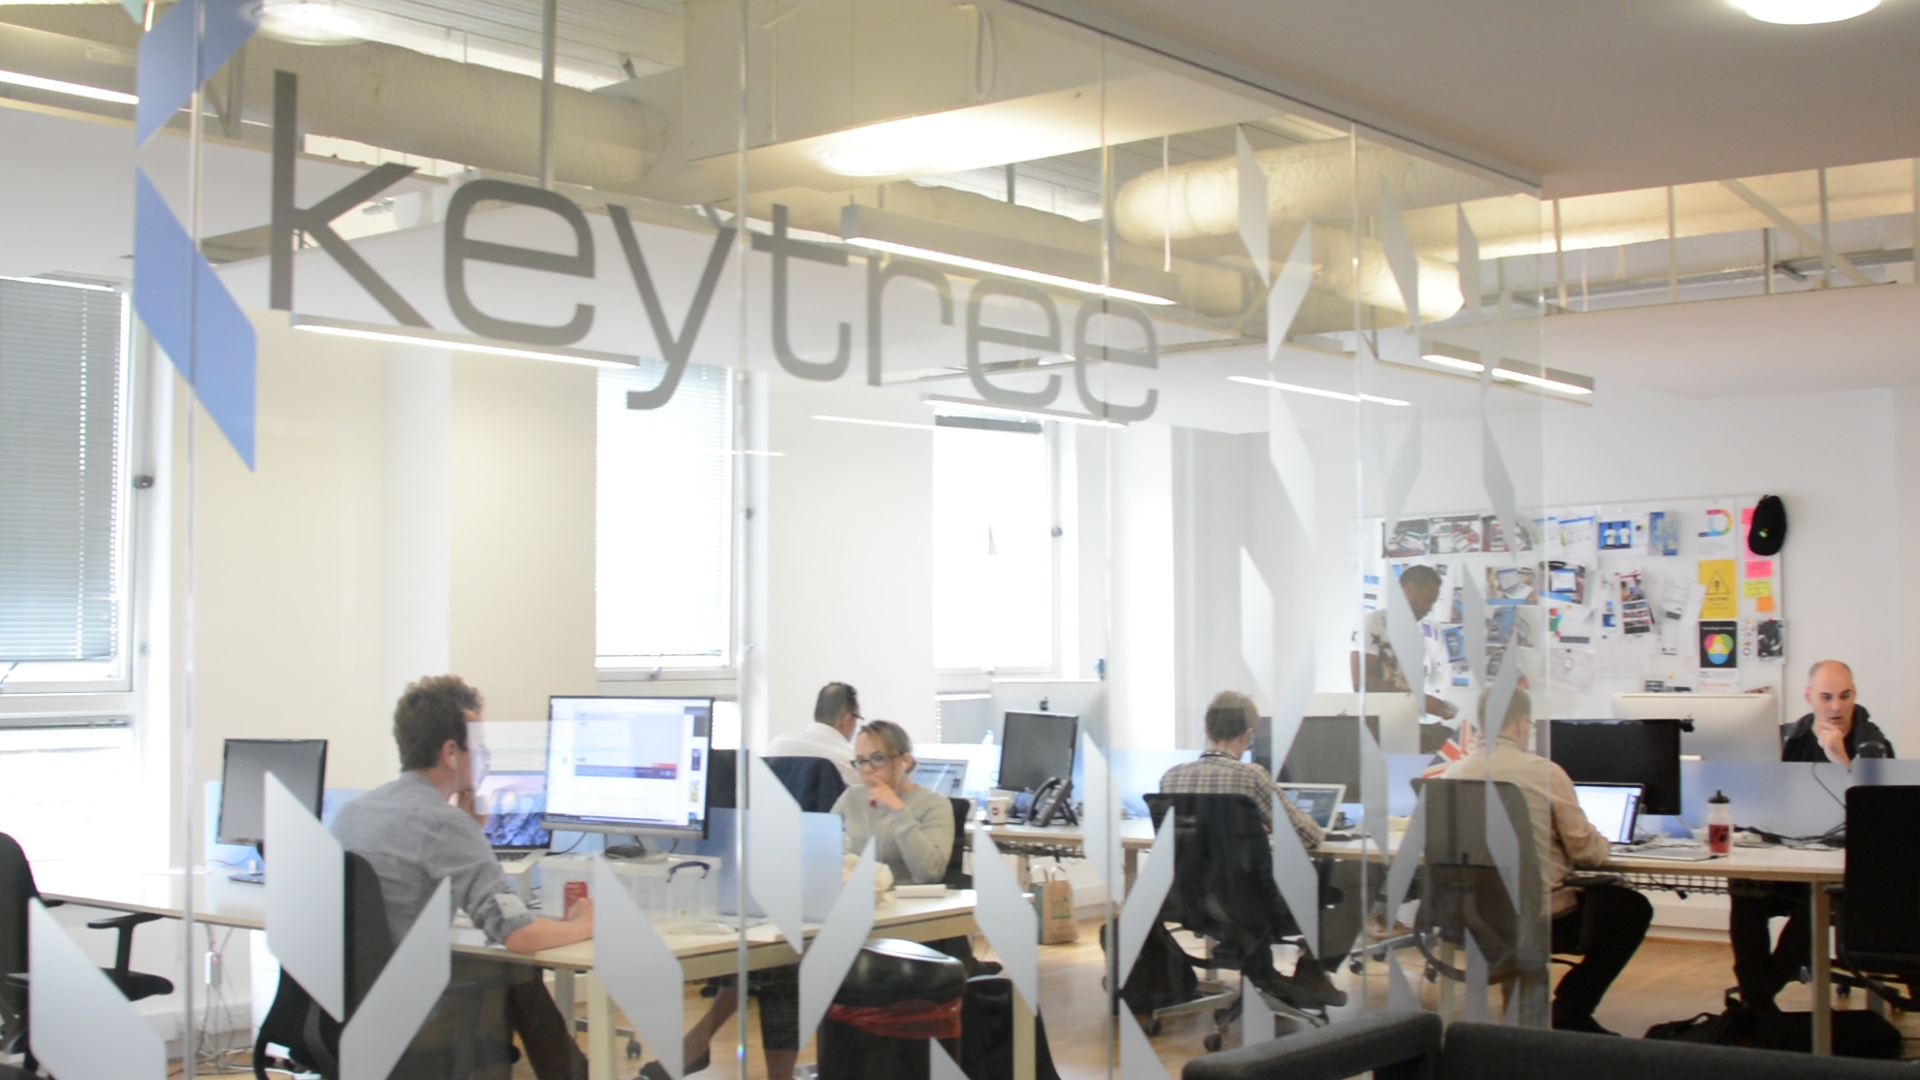 Keytree office London